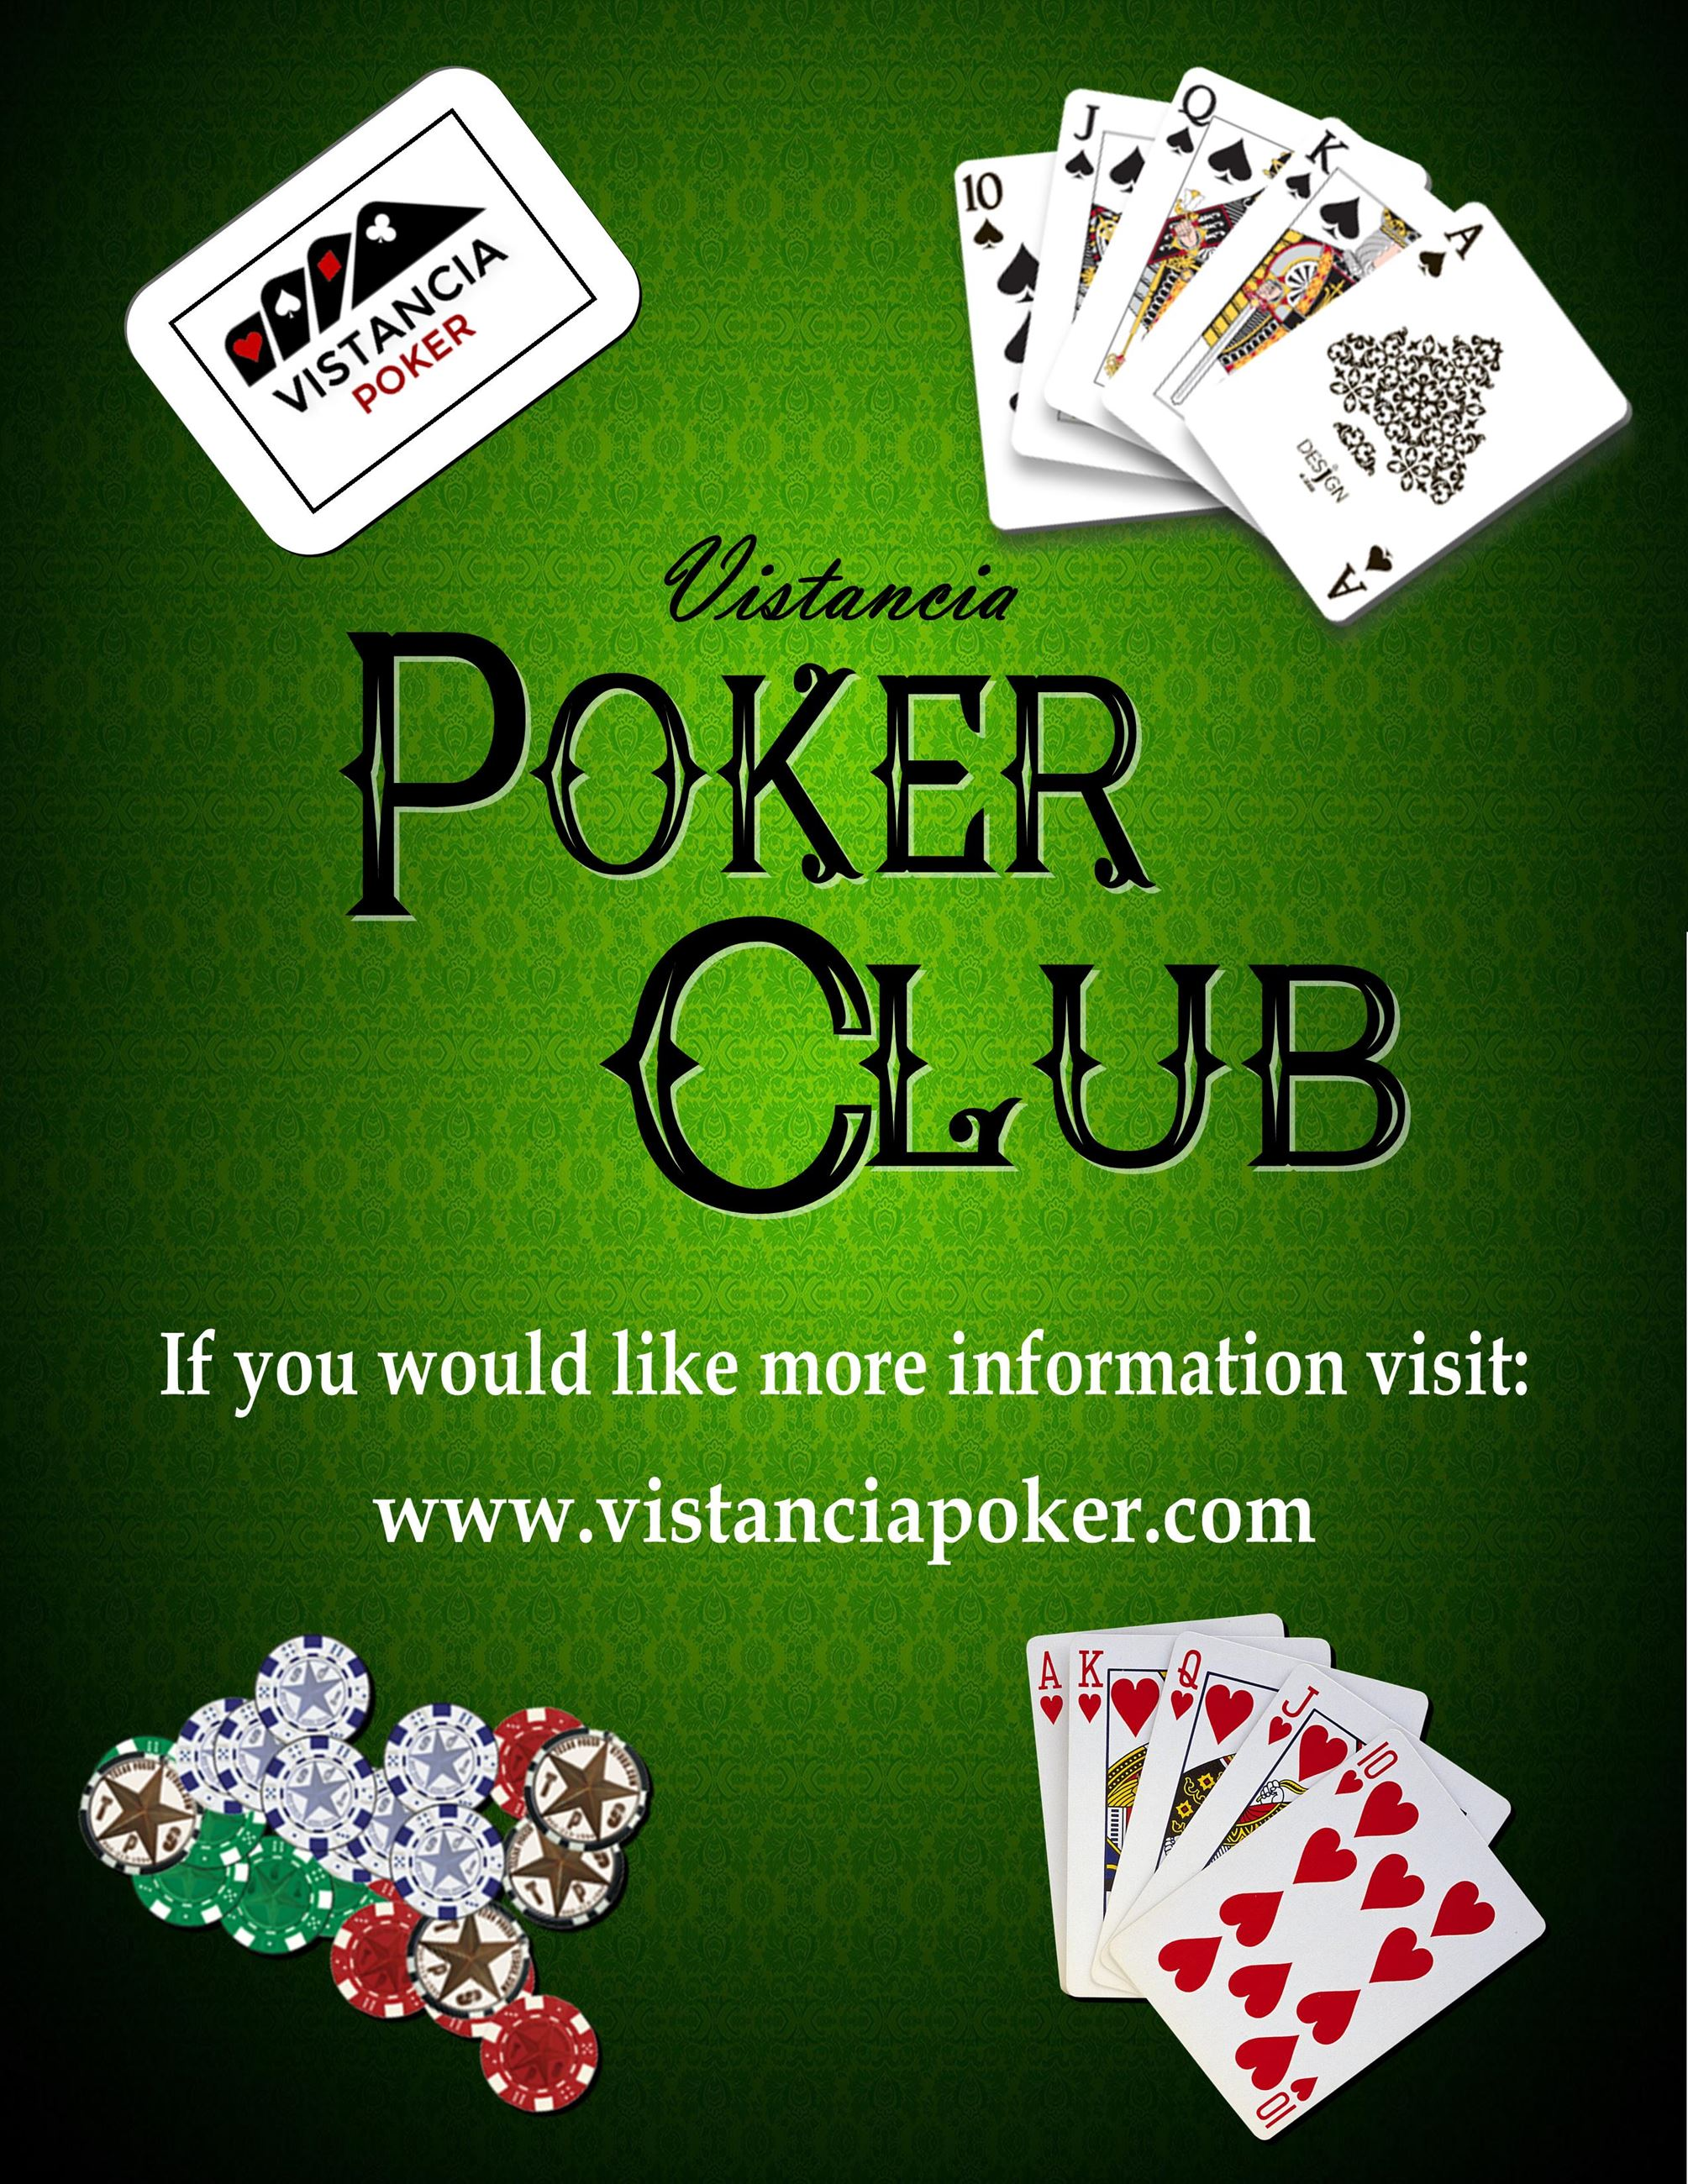 Vistancia Poker Club (generic)